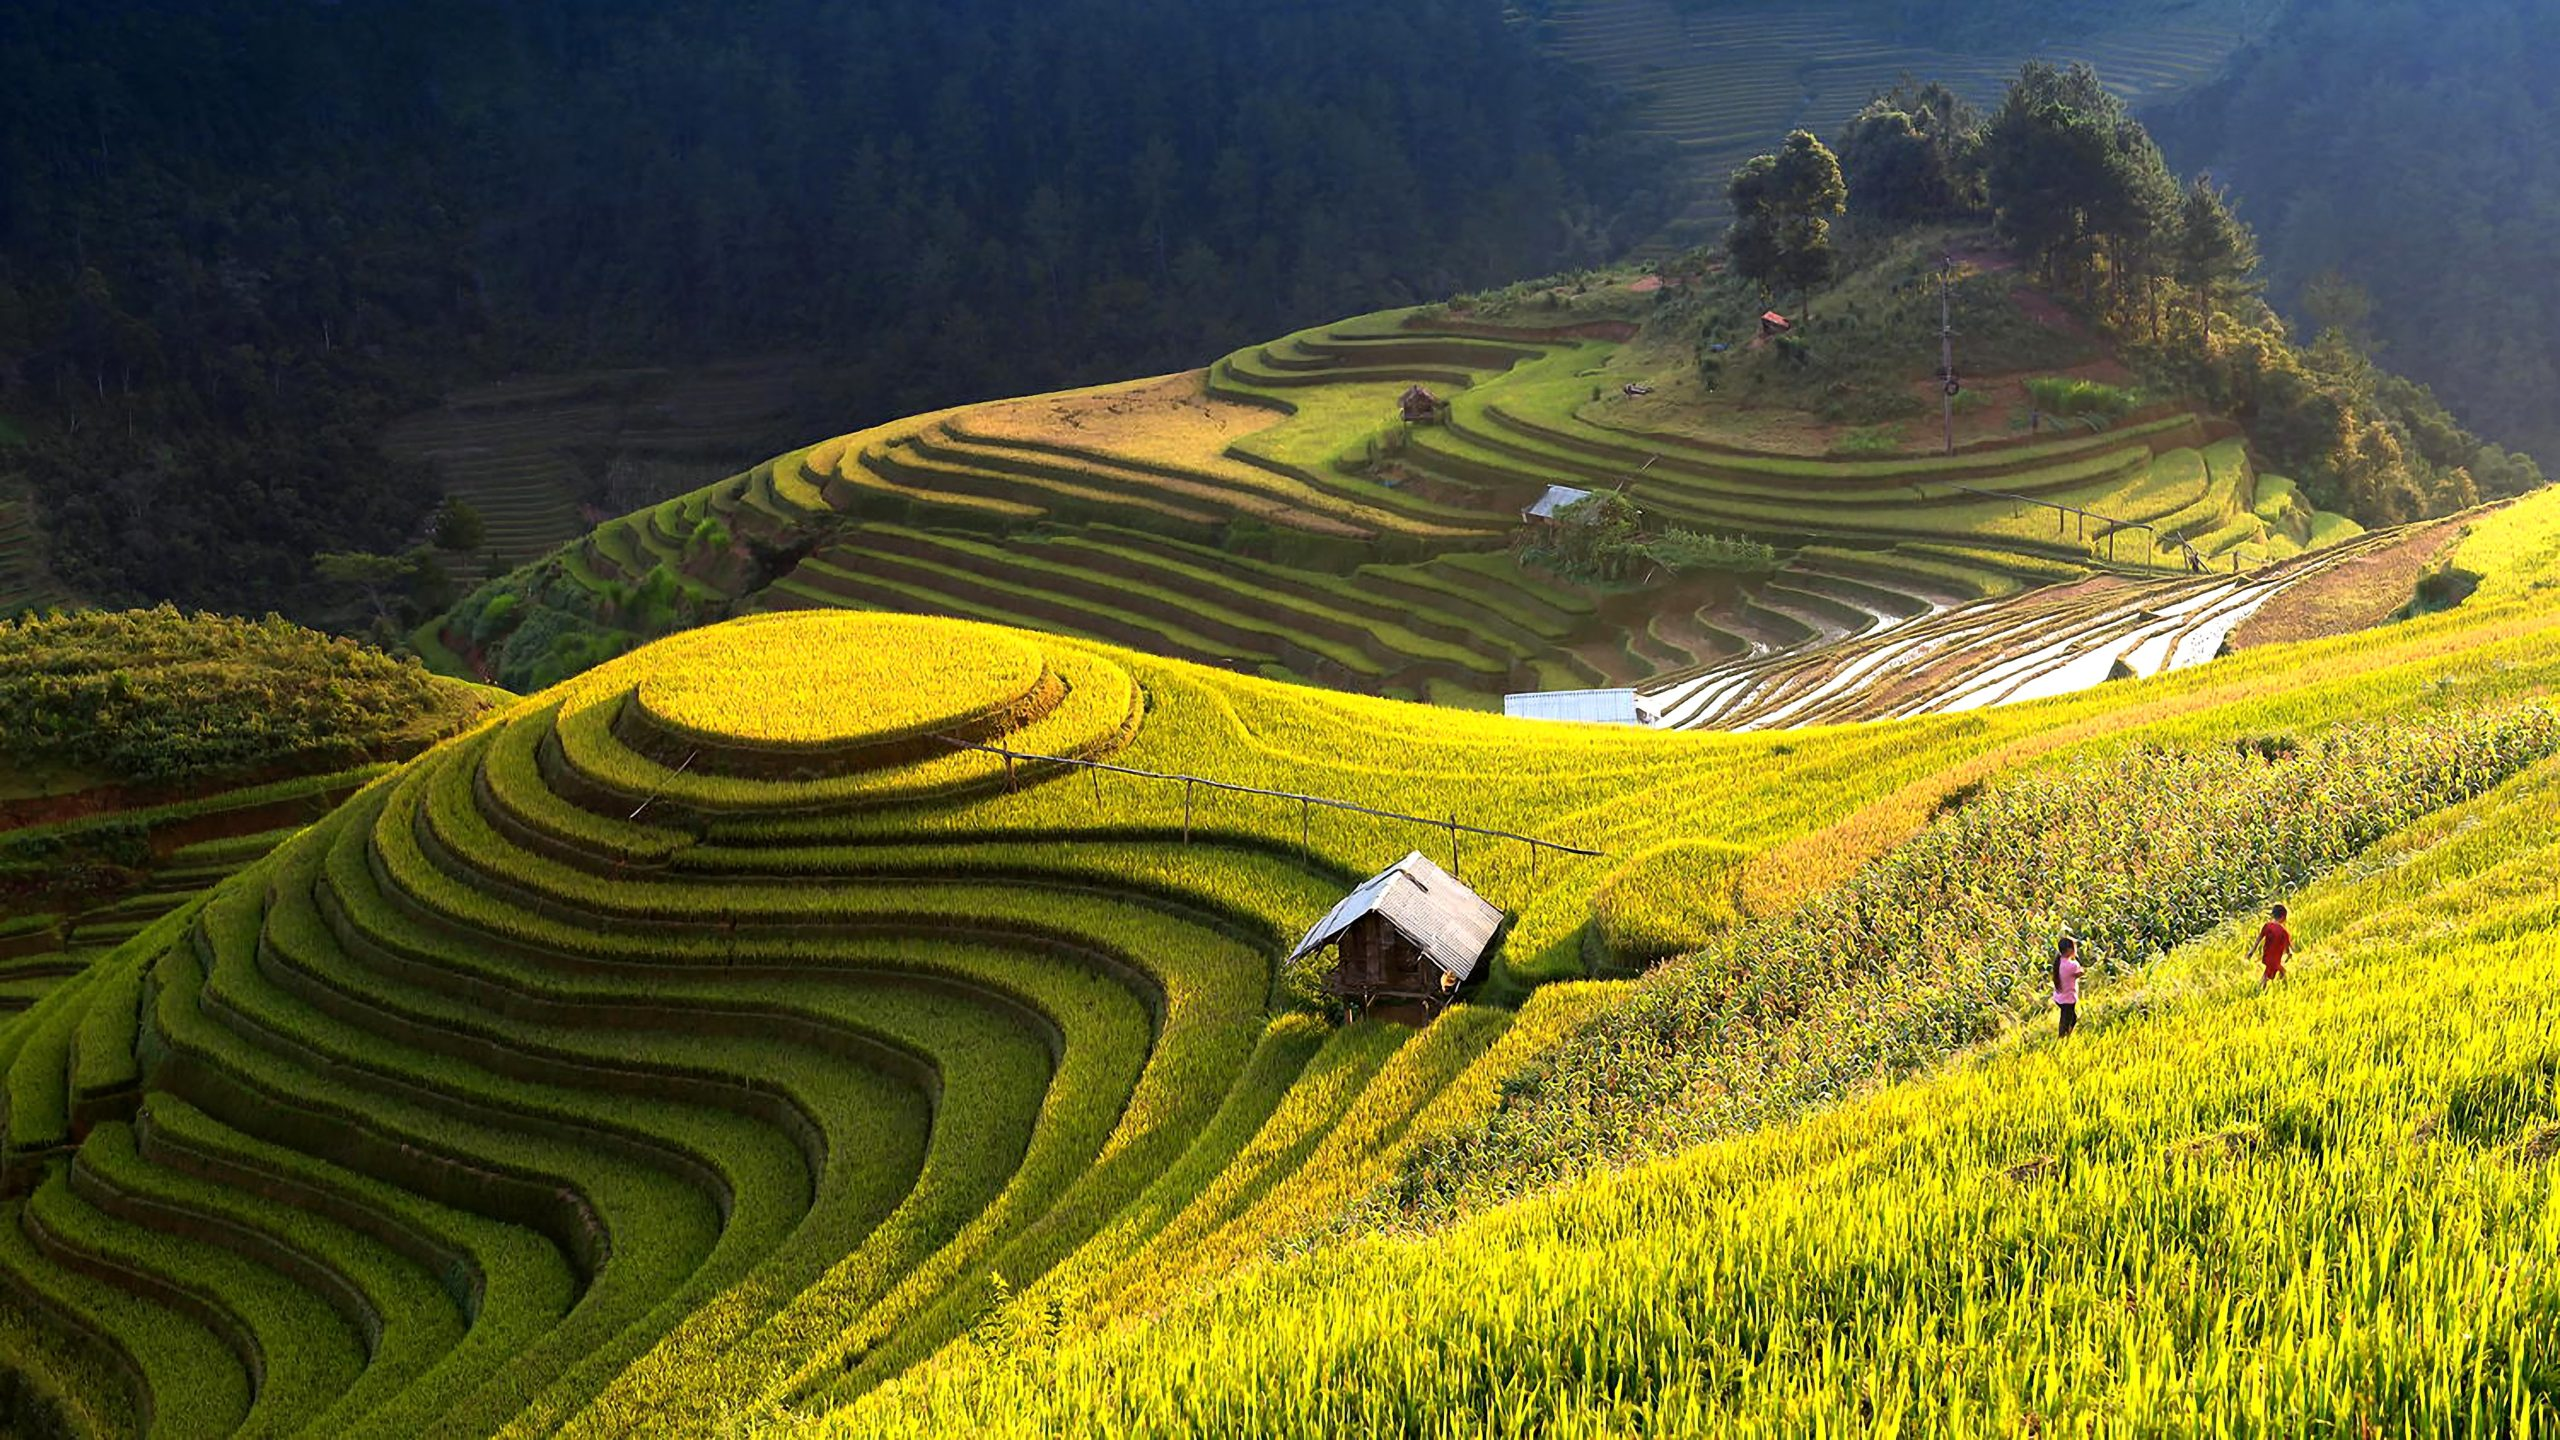 Green and Golden Rice Terraces in Tay Nguyen